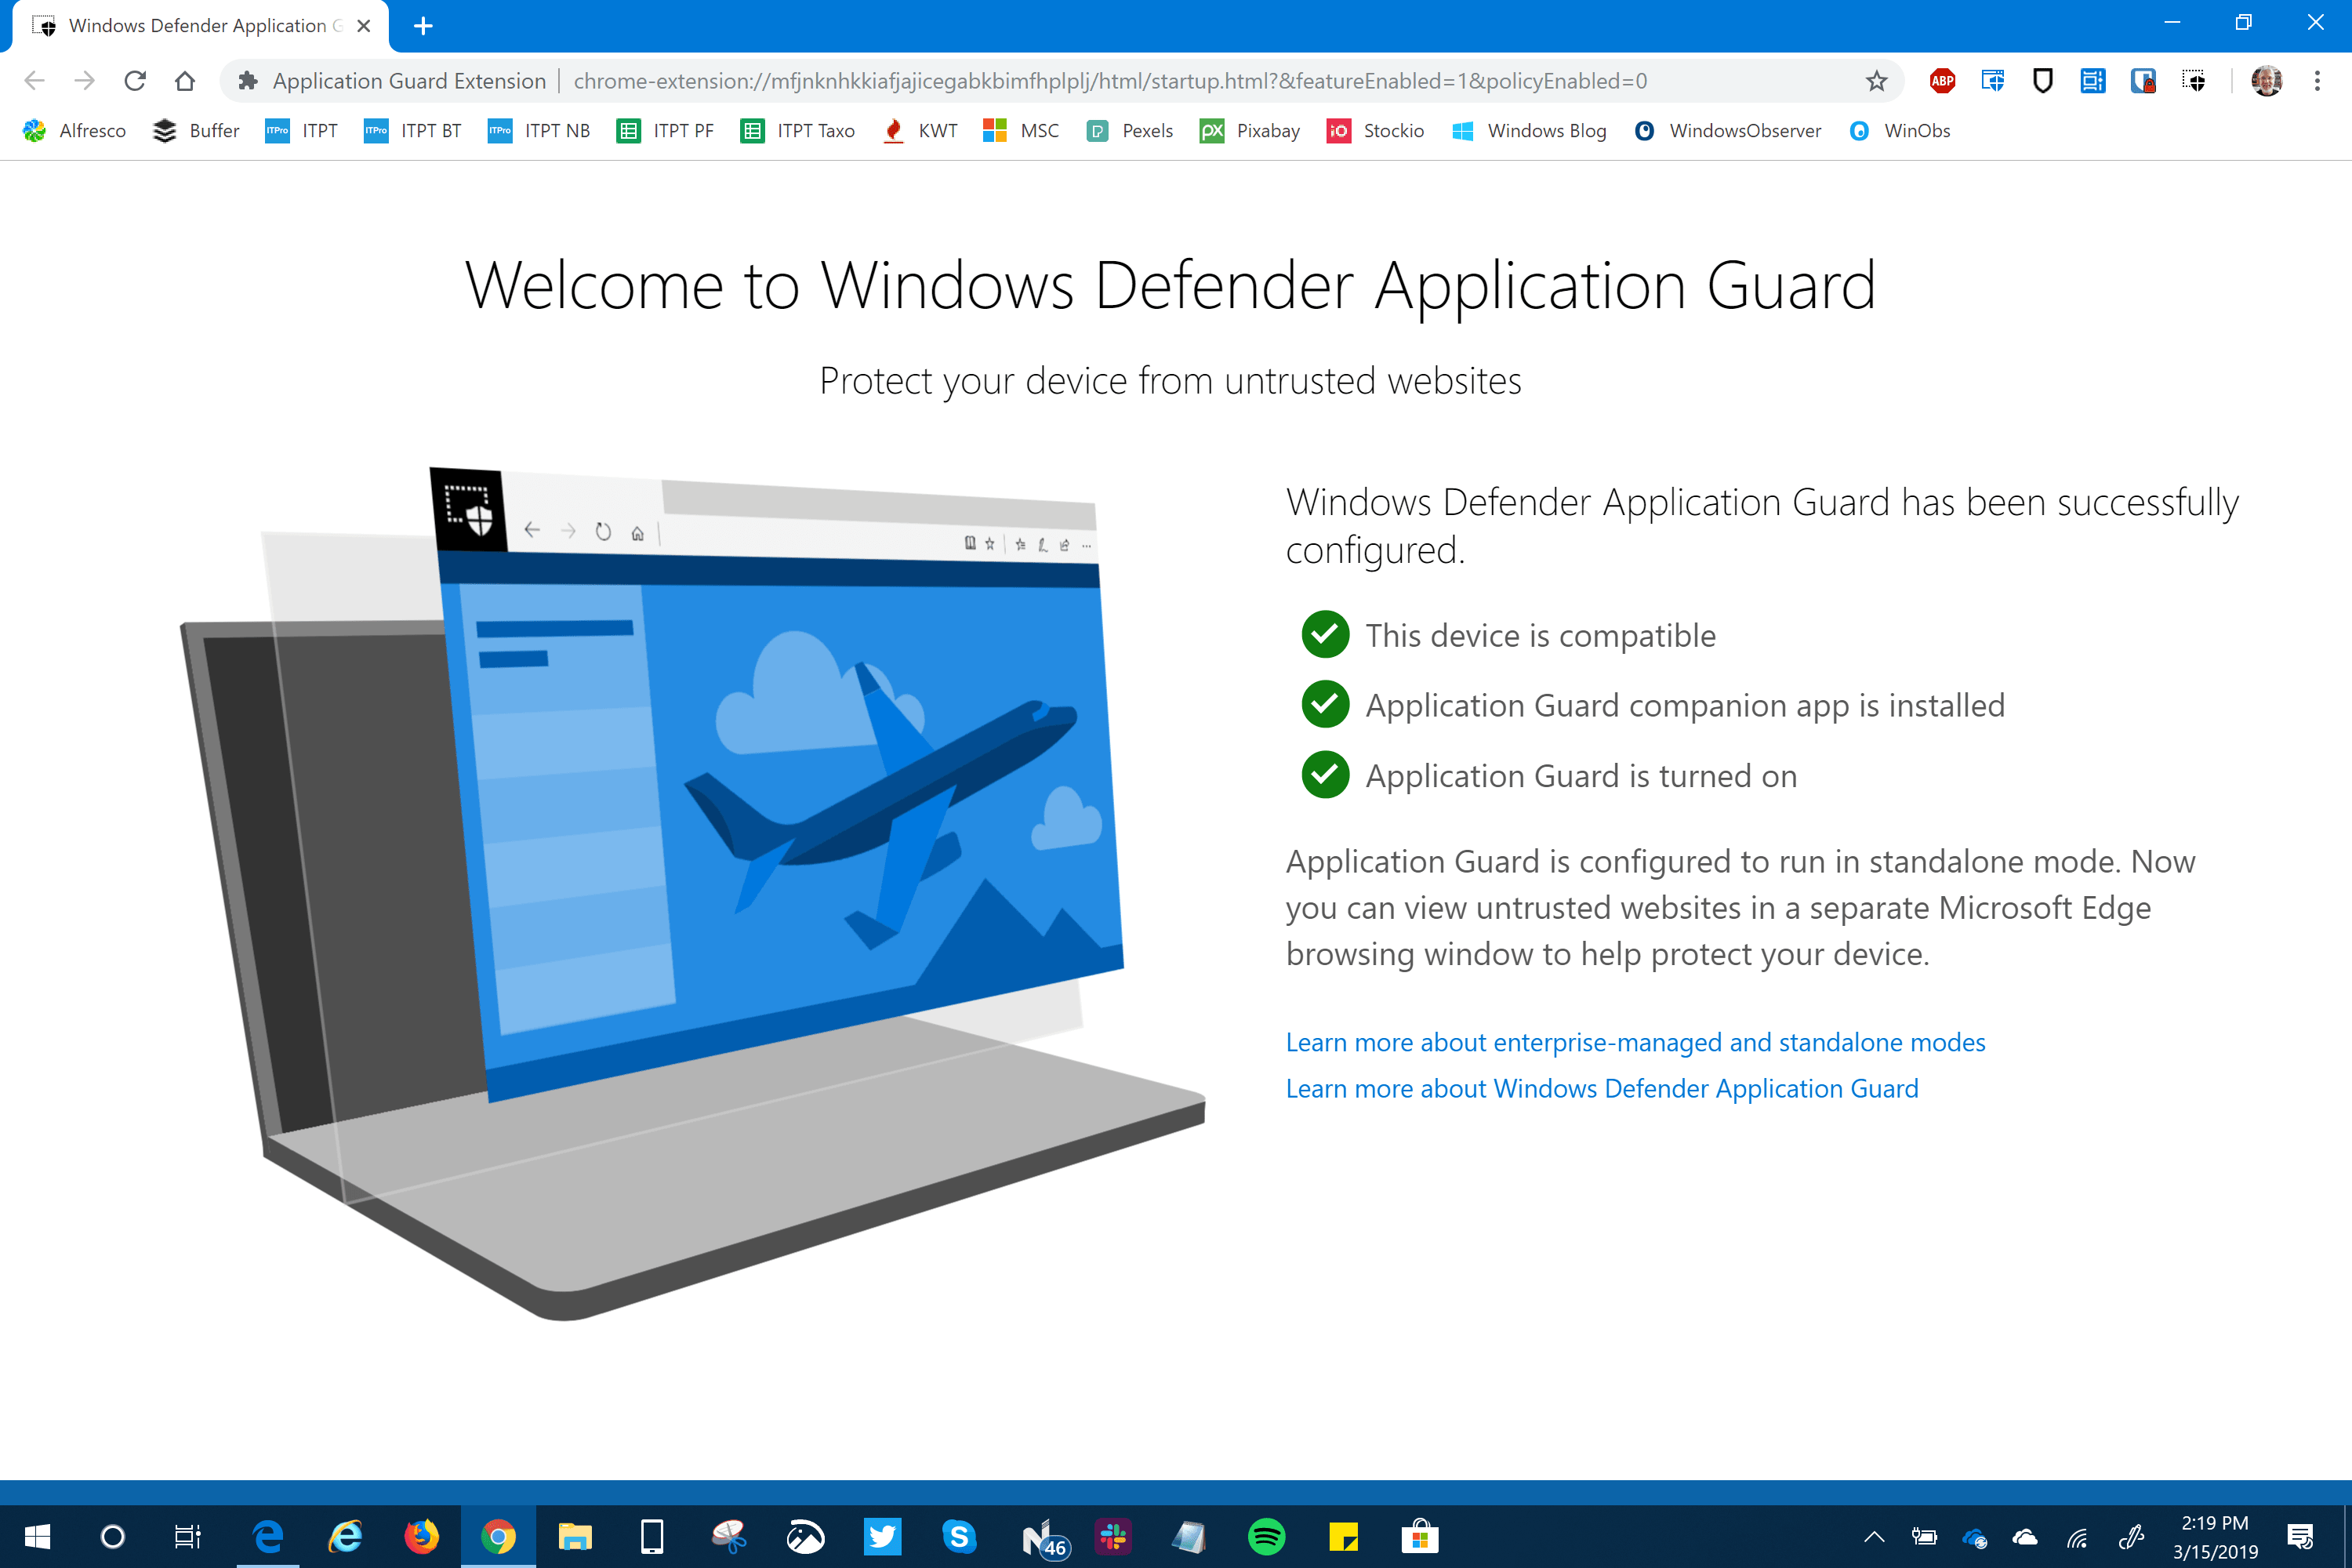 Windows Defender Application Guard Extension for Chrome and Firefox